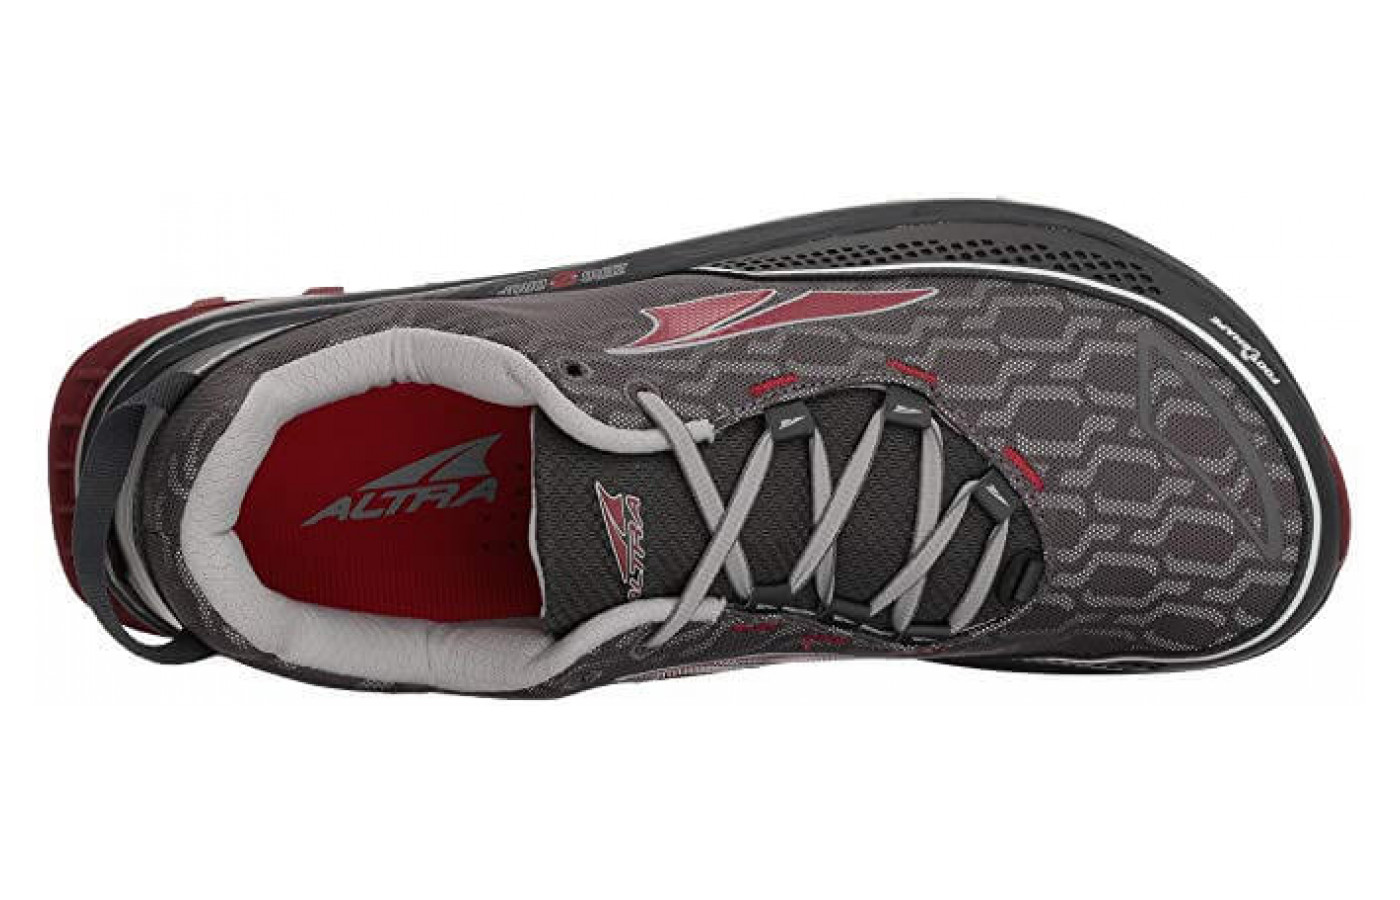 The Timp IQ features a water resistant mesh outsole